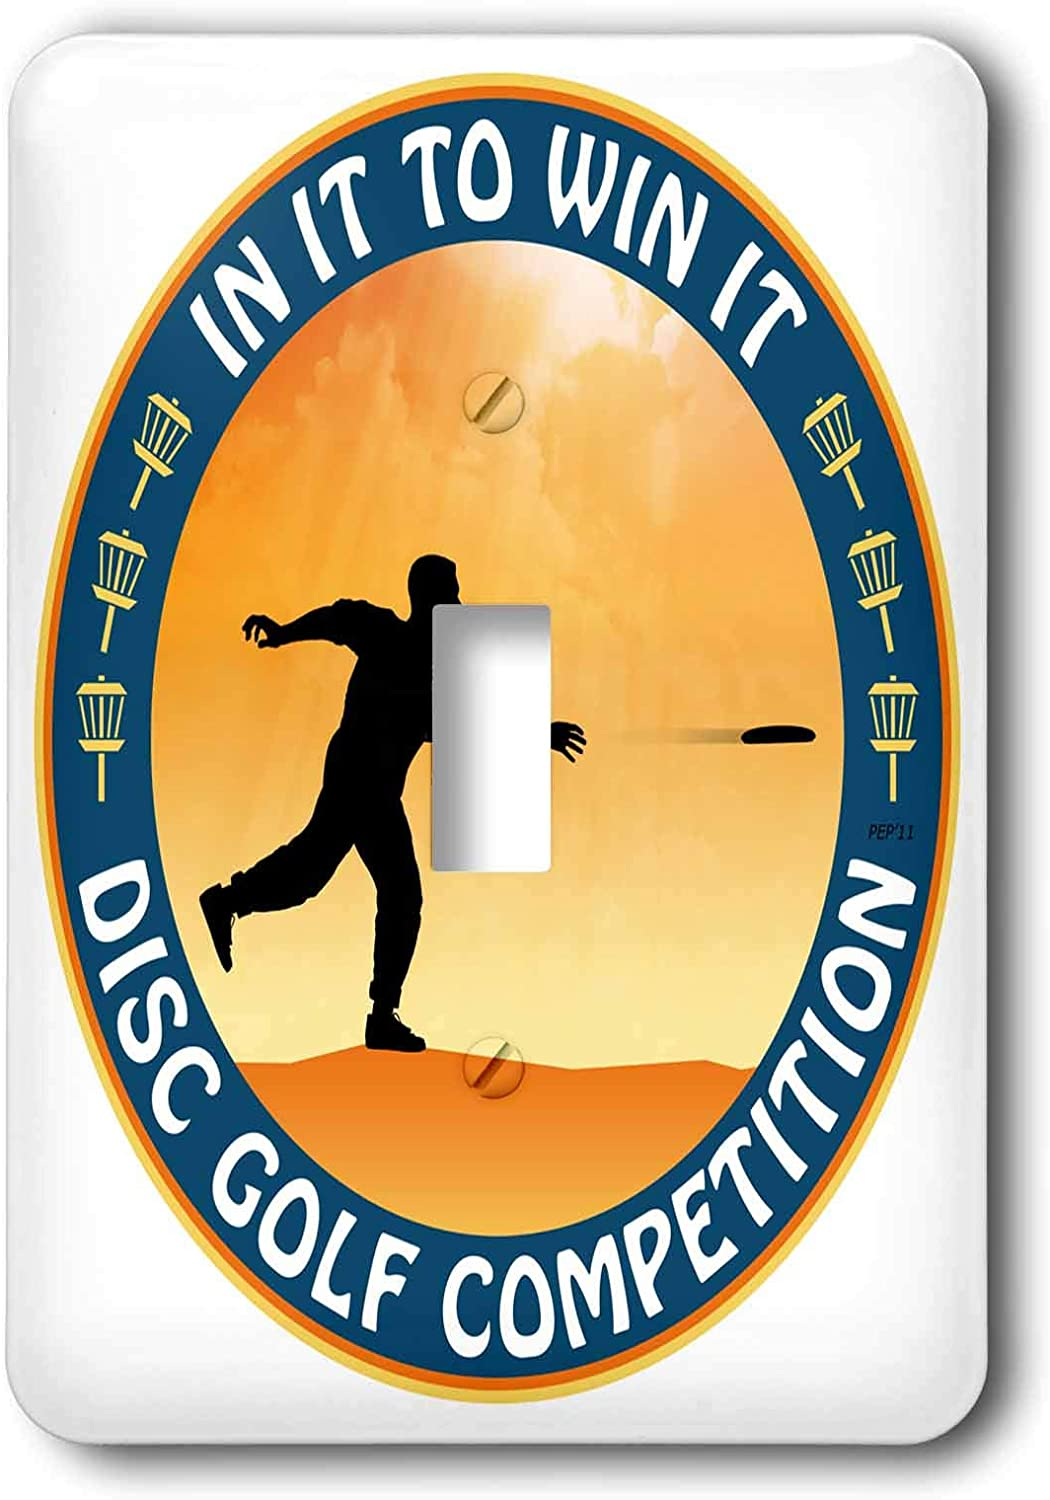 3drose Lsp 21103 1 Disc Golf Competition In It To Win It With Frisbee Disc Golf Player Throwing A Shot Single Toggle Switch Switch Plates Amazon Com